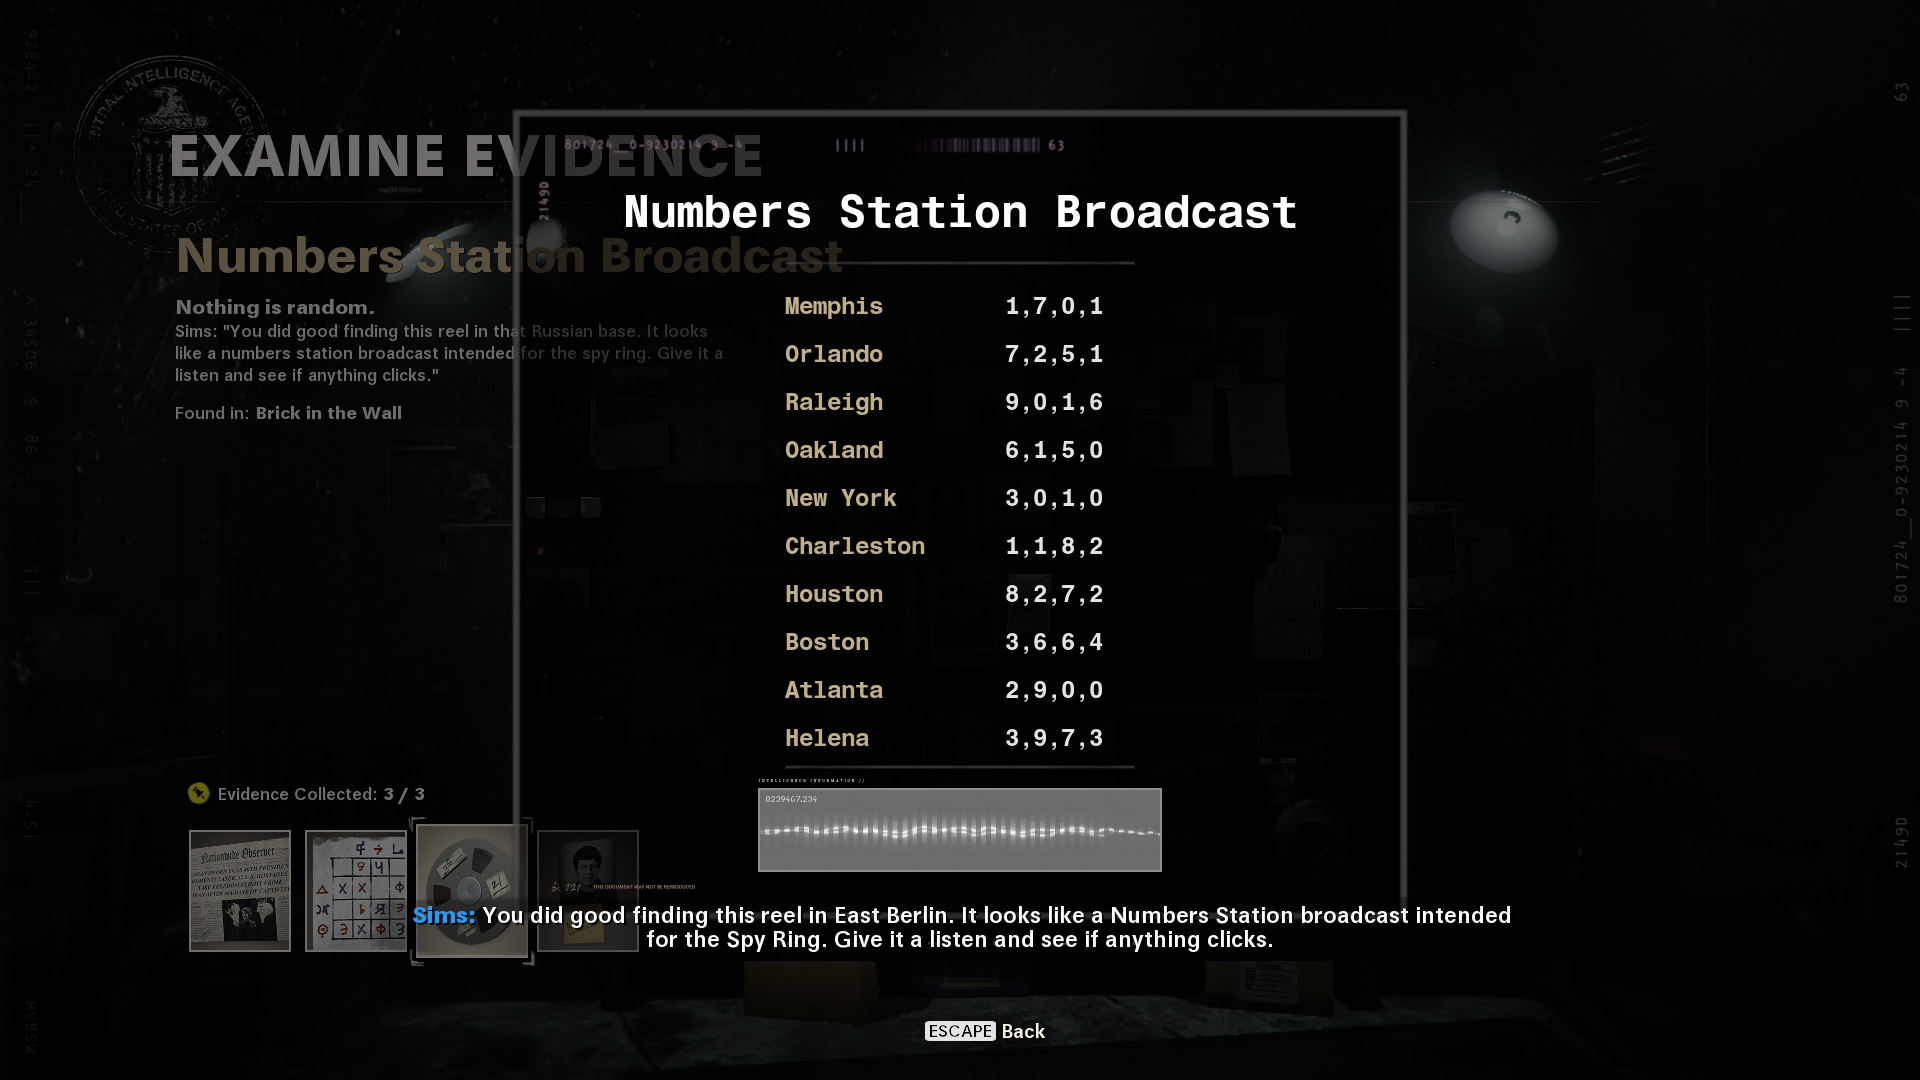 Call of Duty Cold War: all evidence locations and decrypting floppy disk for Operation Chaos   Rock Paper Shotgun